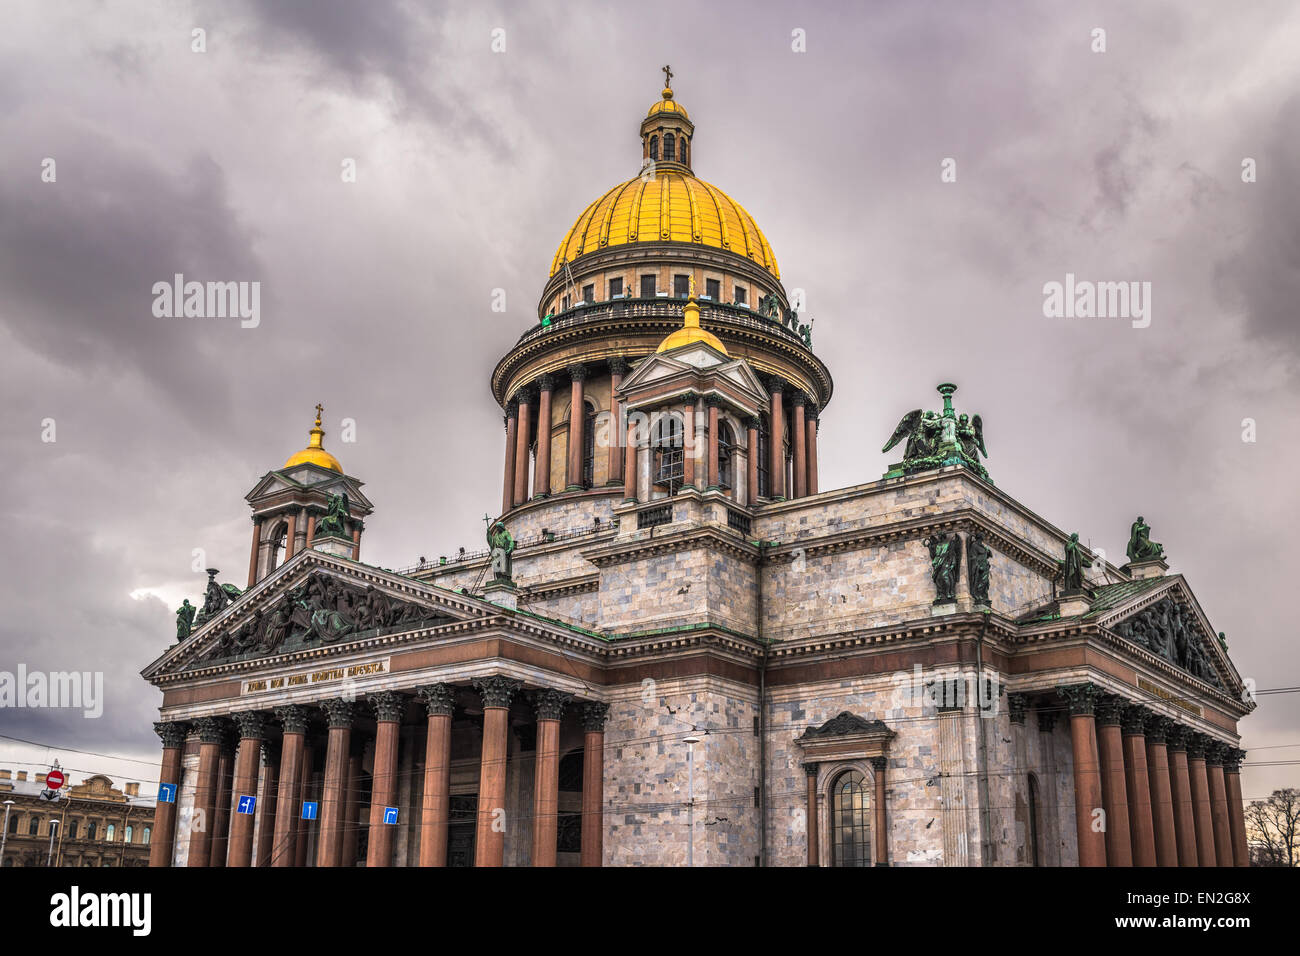 Saint Isaac's Cathedral in Saint Petersburg, Russia - Stock Image